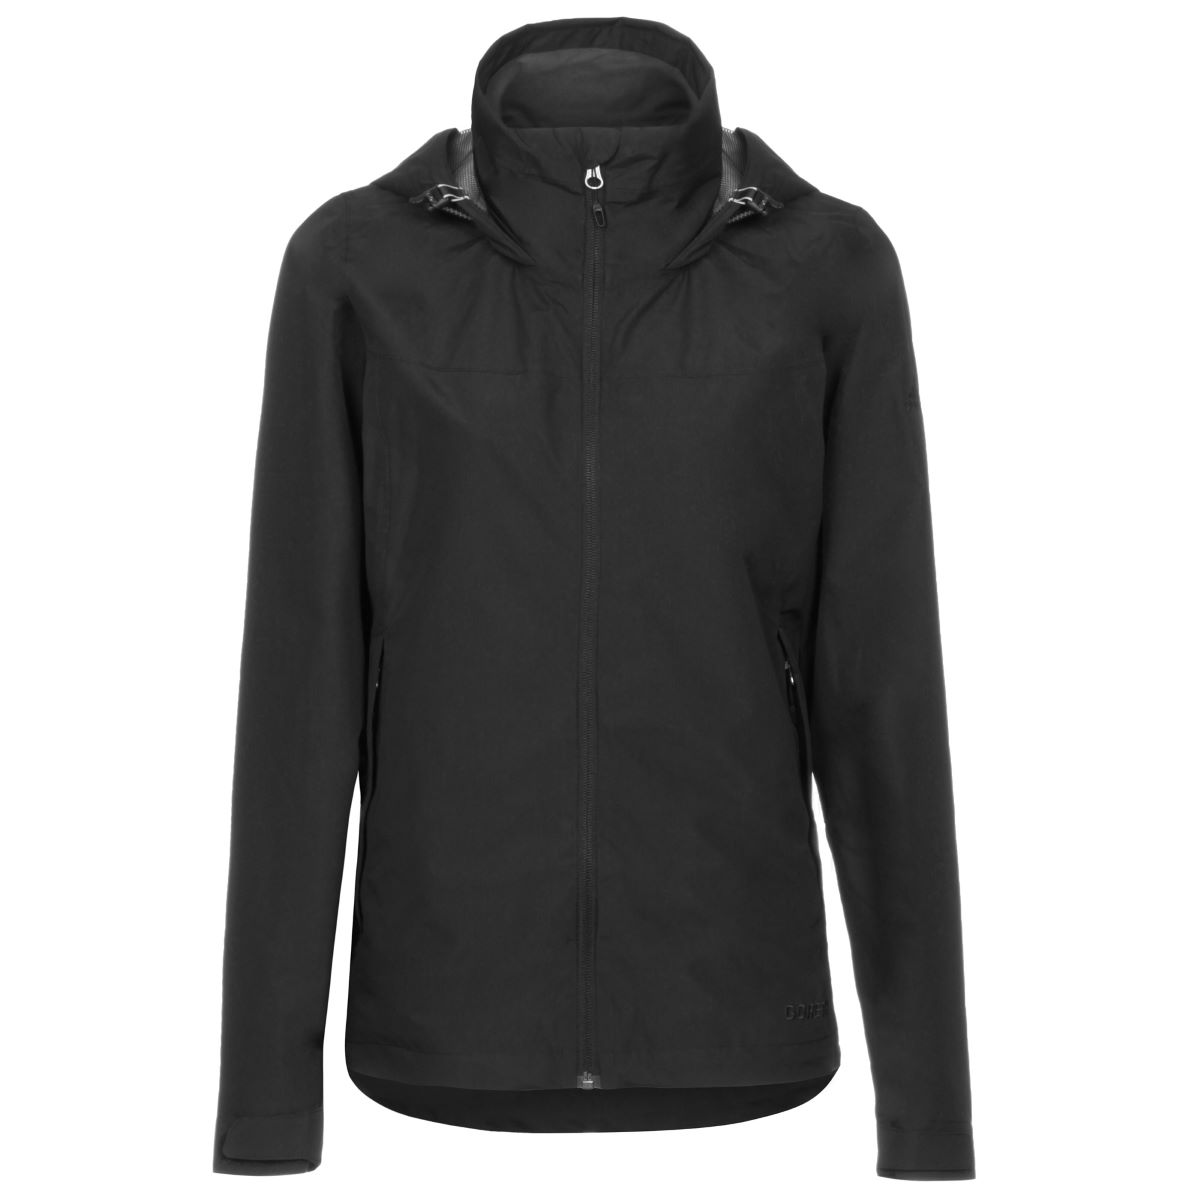 Adidas Womens Gtx Jacket Review